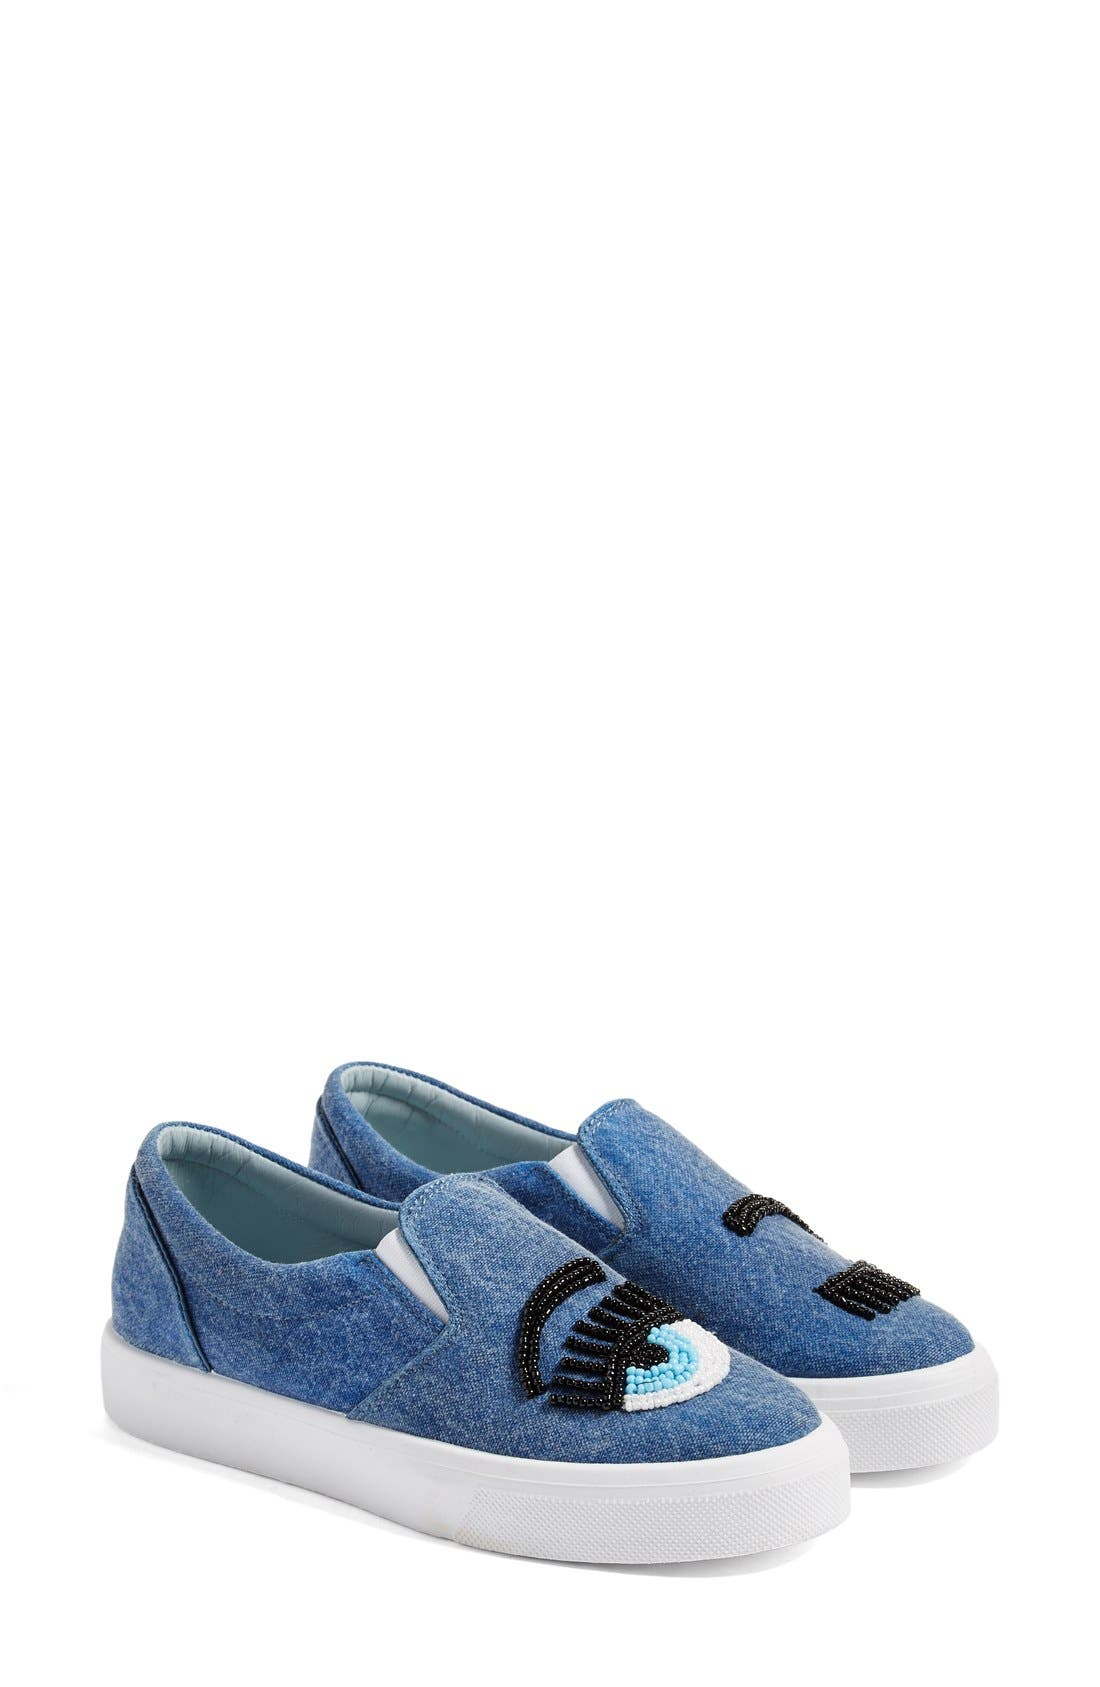 Alternate Image 3  - Chiara Ferragni Flirting Beaded Slip-On Sneaker (Women)